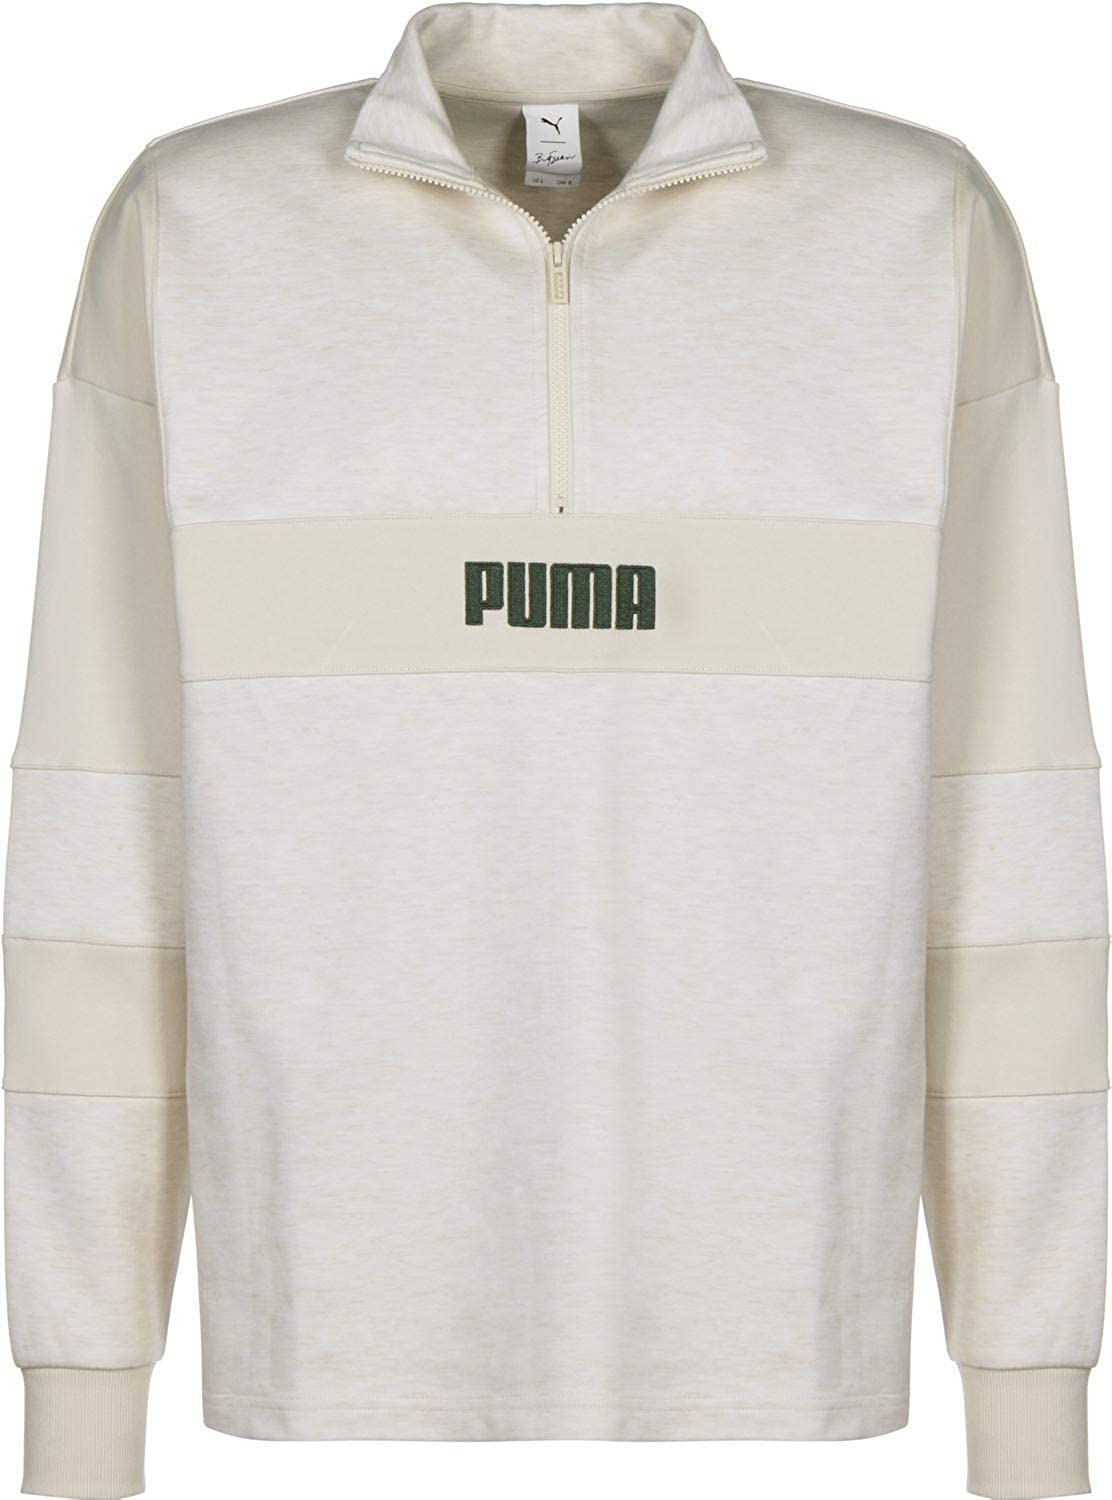 Puma x Big Sean Half Zip Sweater